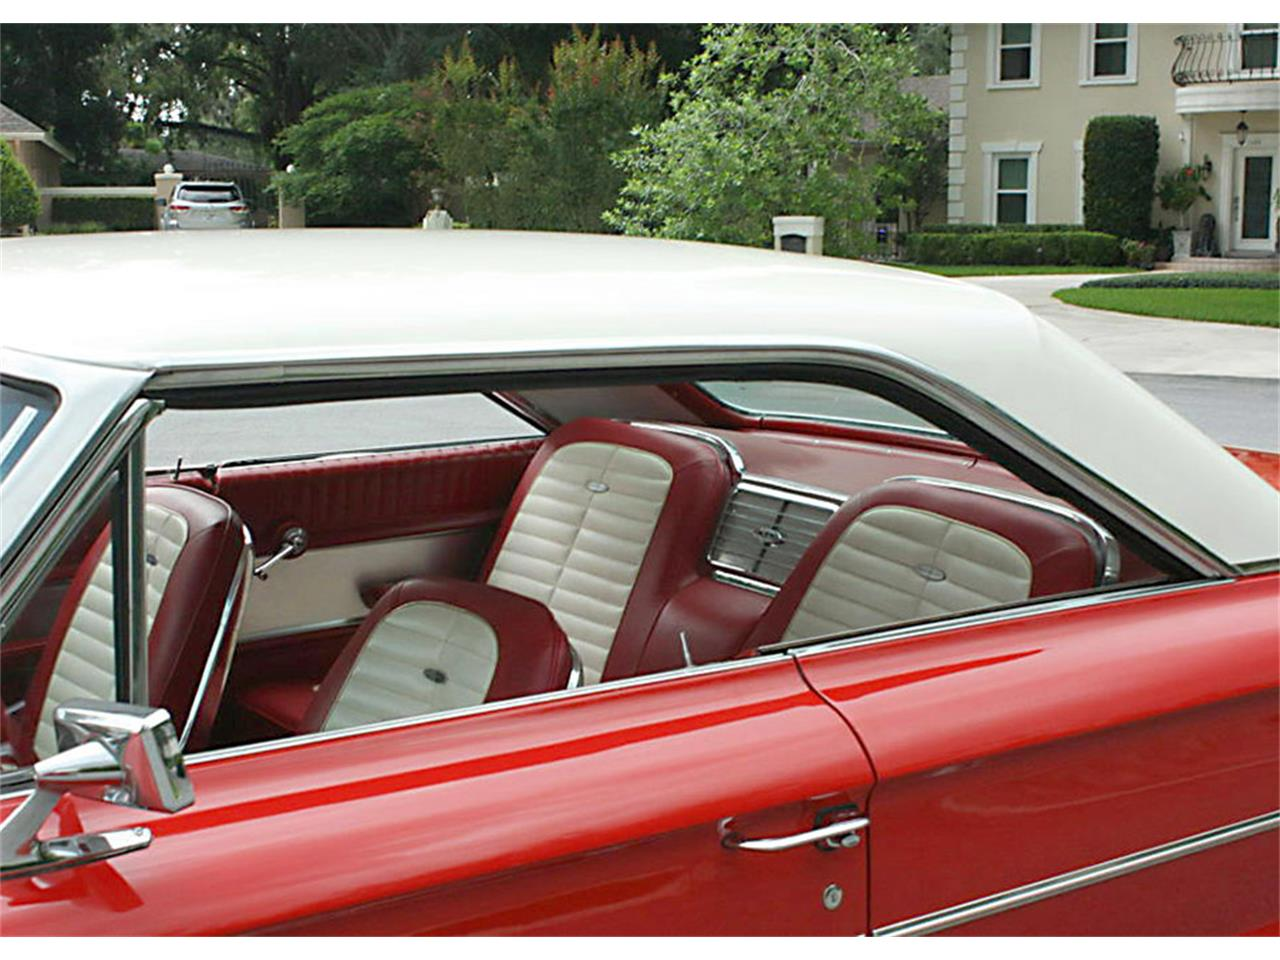 Large Picture of '64 Galaxie 500 located in Florida - $27,500.00 - NOH3